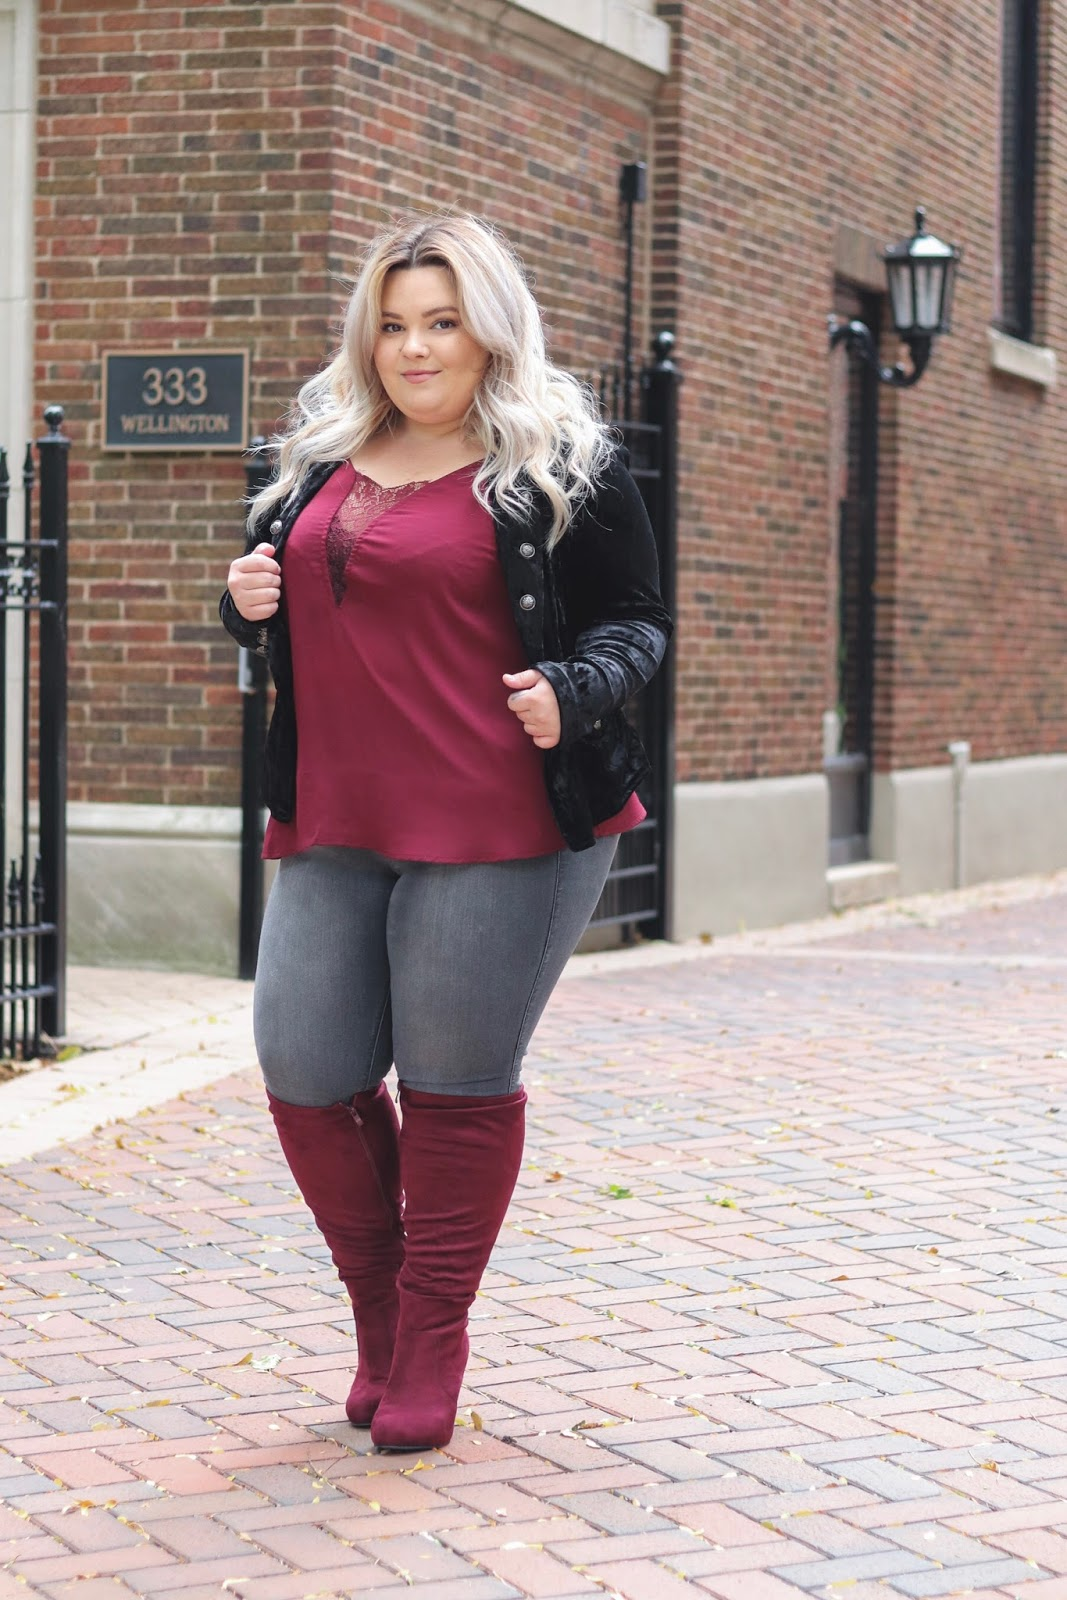 natalie in the city, Natalie Craig, plus size fashion, Chicago model, plus size model, plus size fashion blogger, Chicago fashion blogger, curves and confidence, plus size wide calf boots, wide calf knee high boots, torrid, blogger review, lace tank tops, affordable plus size fashion